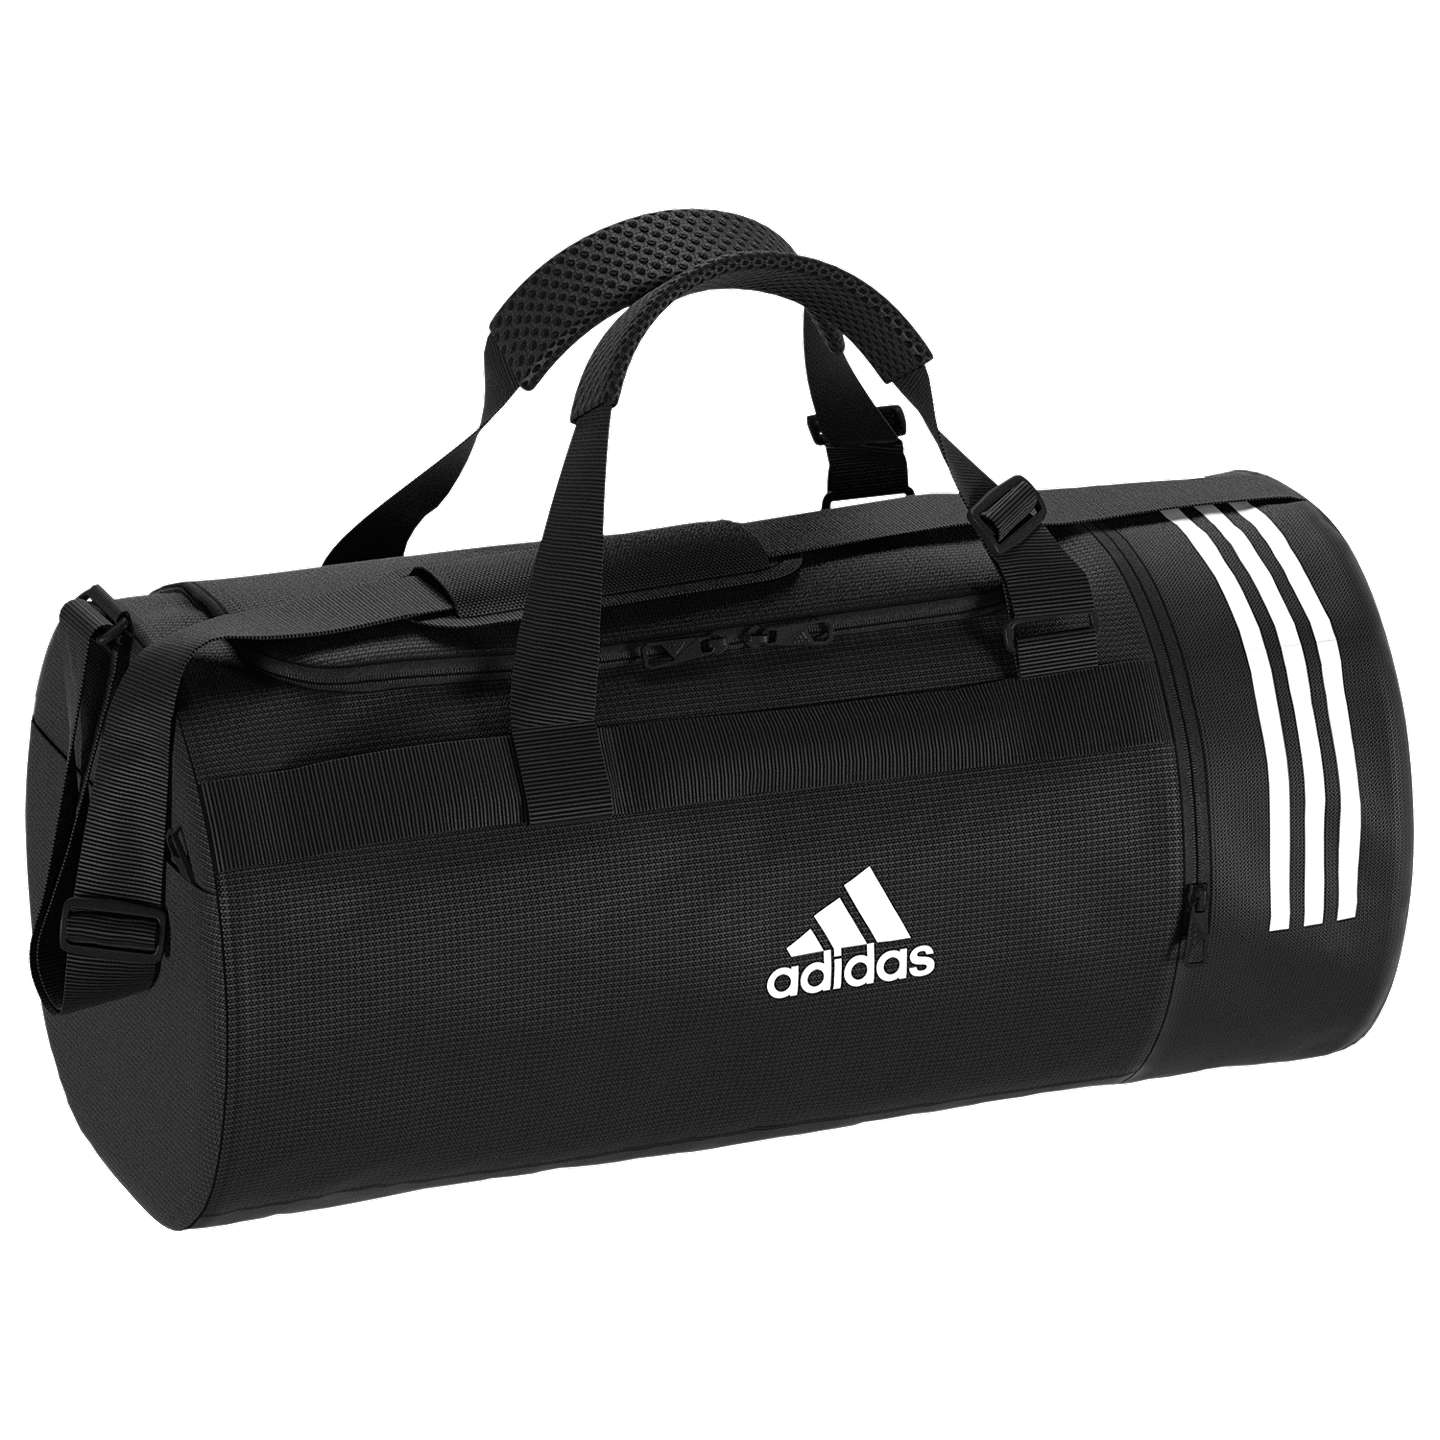 Adidas Small Duffel Bag Dimensions